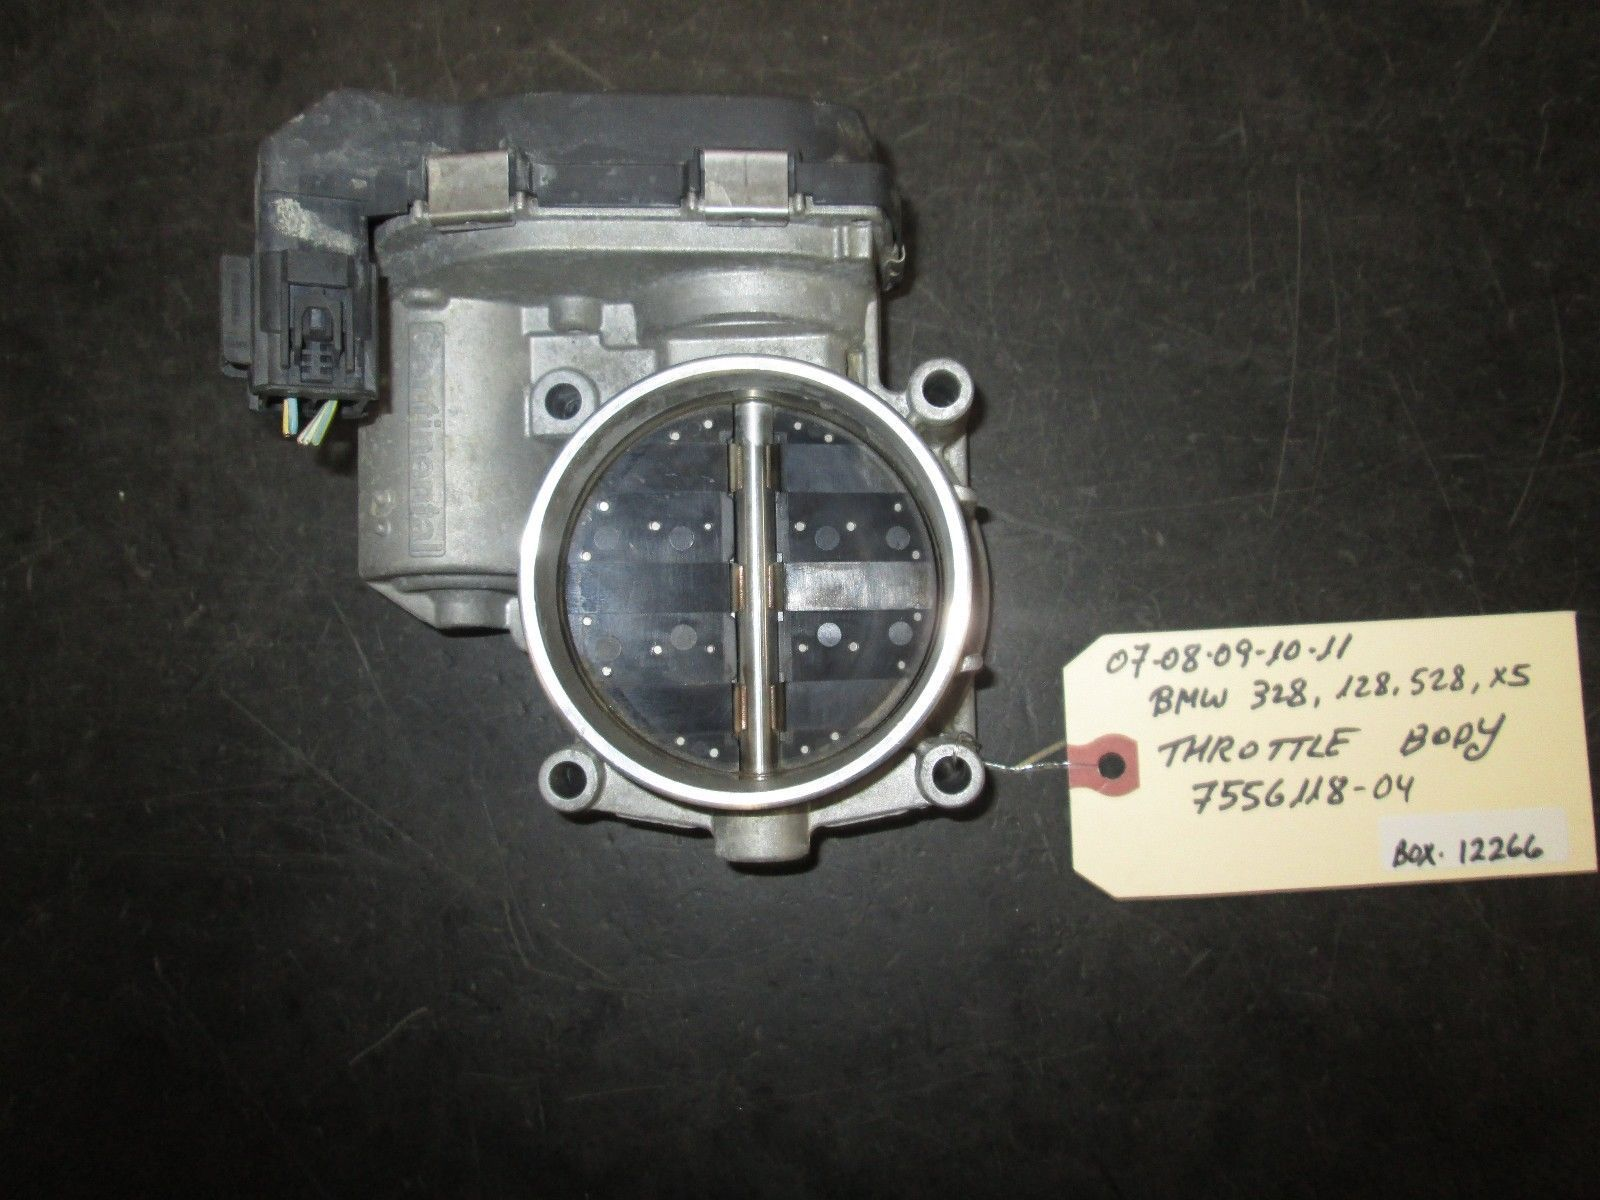 Primary image for 07 08 09 10 11 BMW 328,128,528,X5 THROTTLE BODY #7556118-04 *See item*